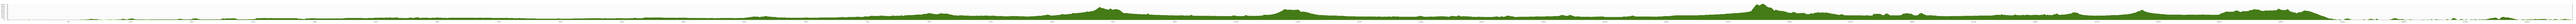 Elevation profile Cycle Route EuroVelo: Baltic – Adriatic